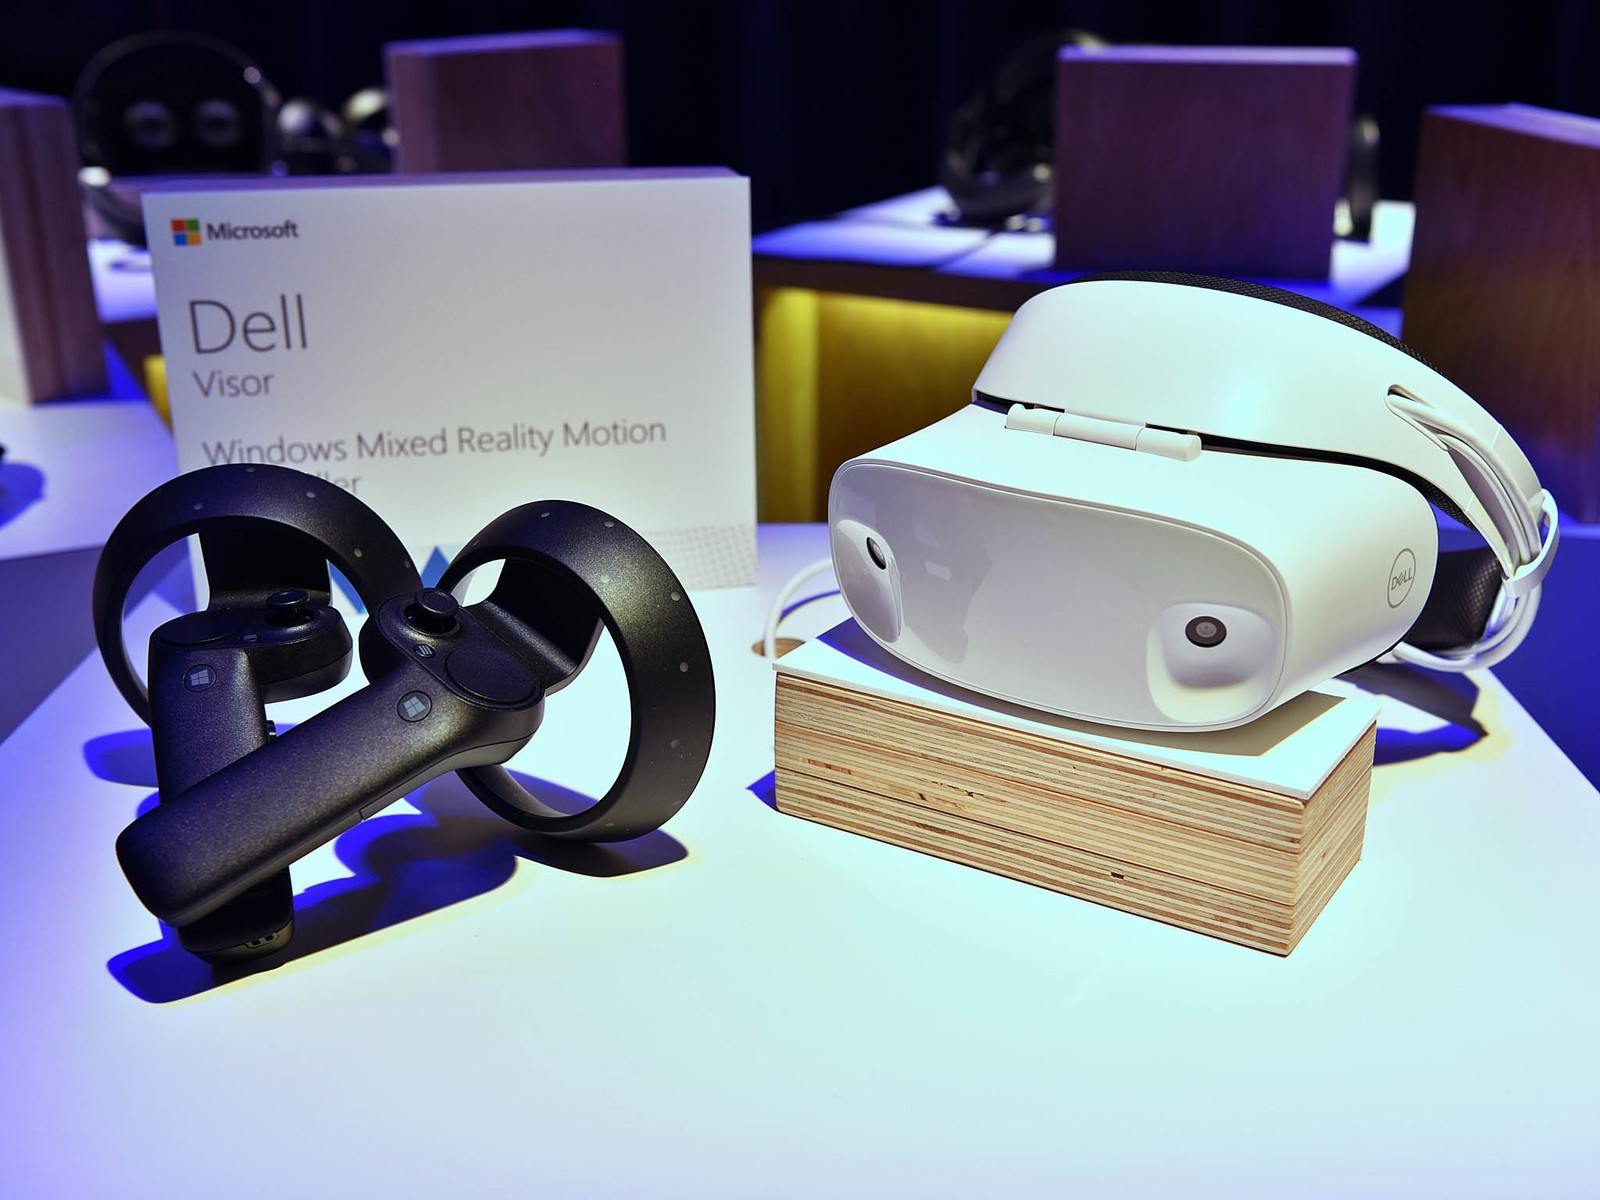 Everywhere you can buy a Windows Mixed Reality headset